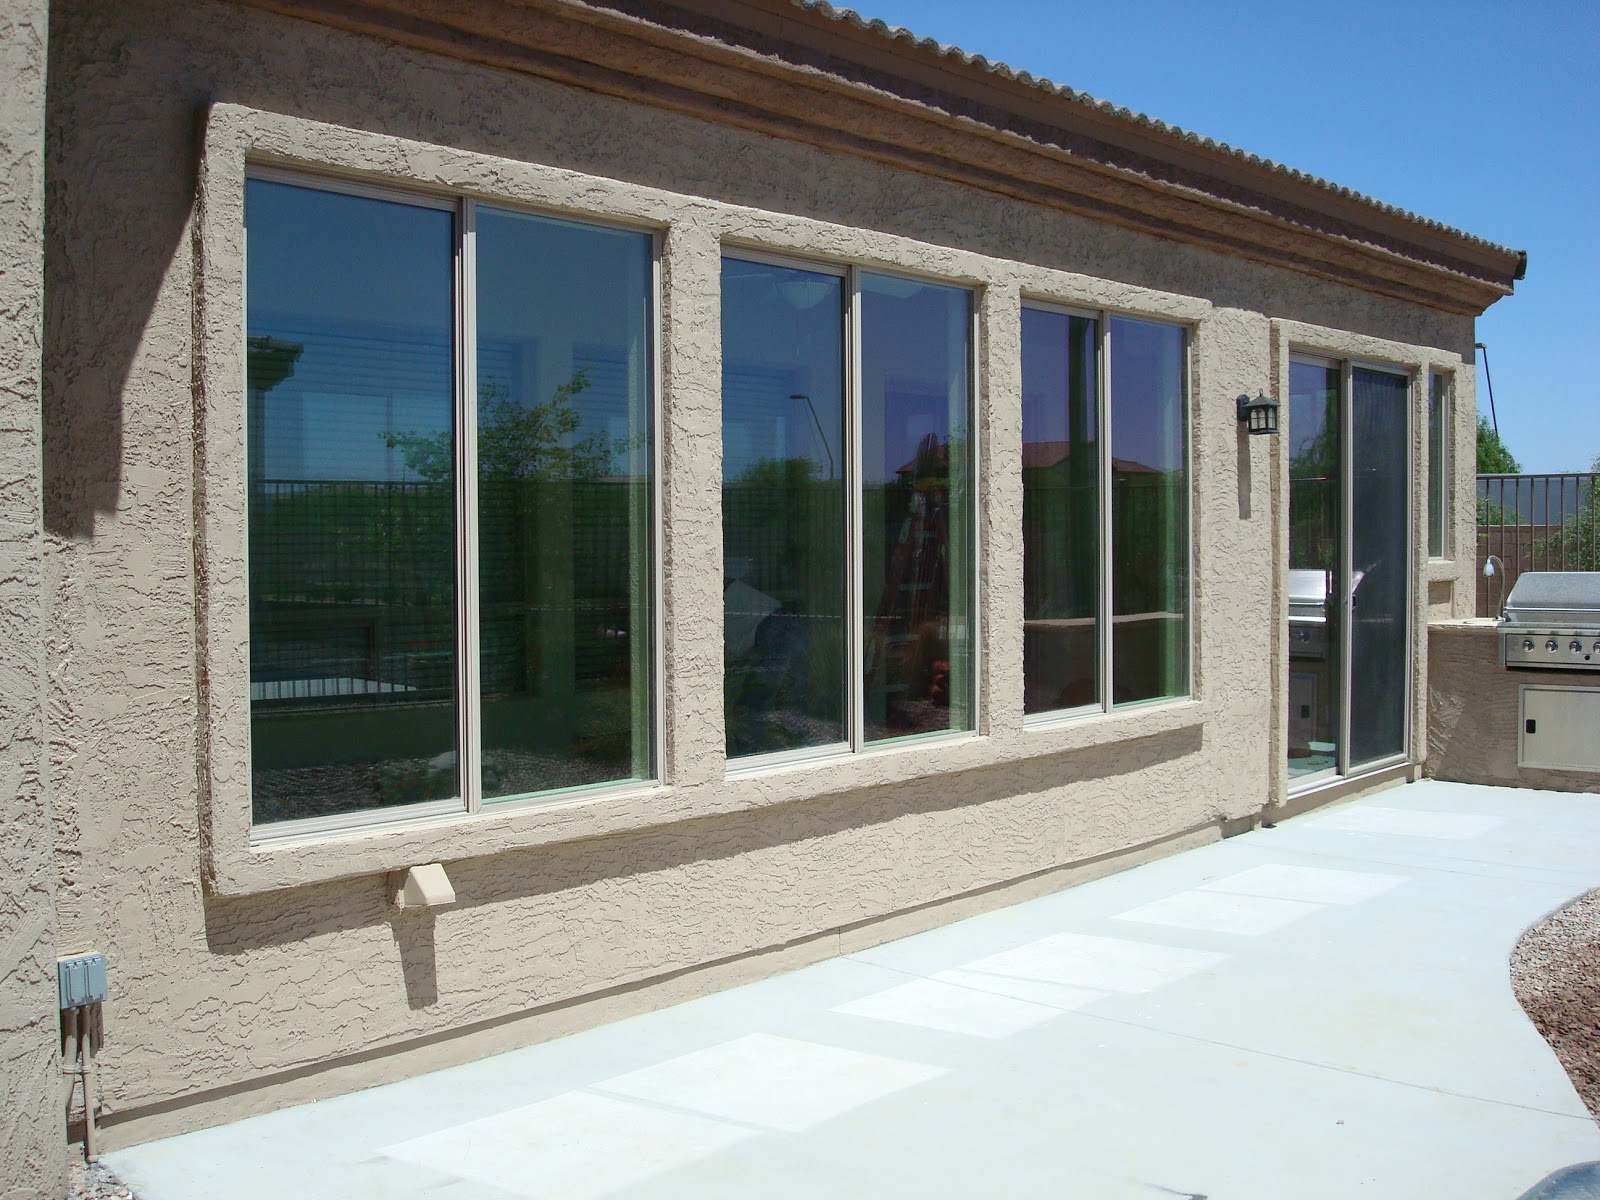 Hoa approval for modular sunroom arizona enclosures and for Modular sunrooms